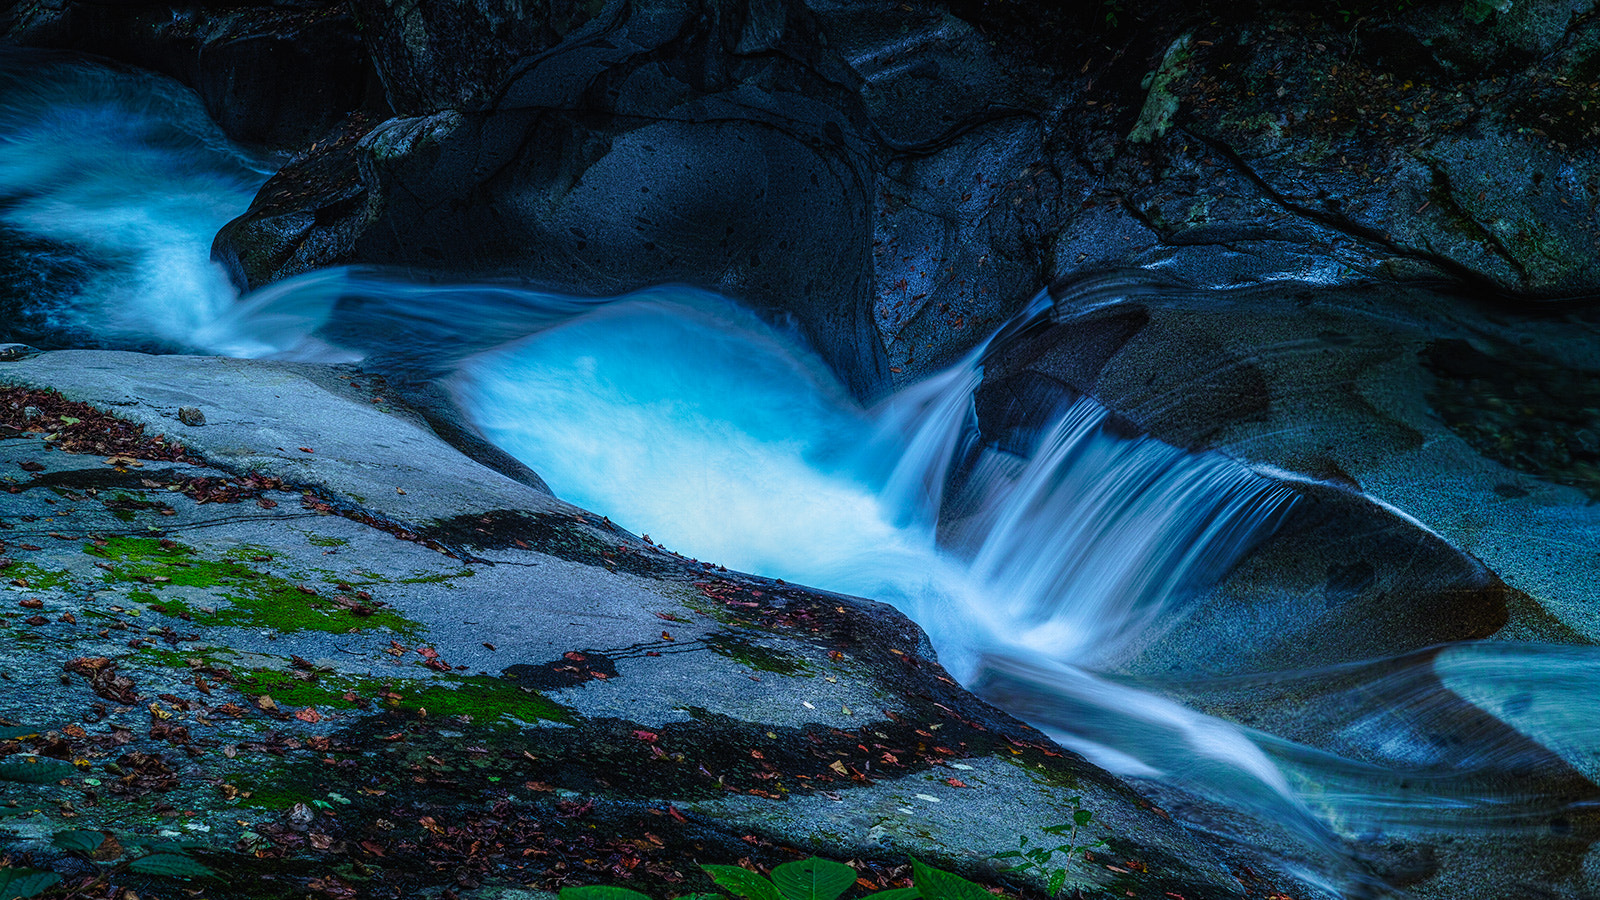 Photograph Stream of Emerald by Hideo Ishijima on 500px